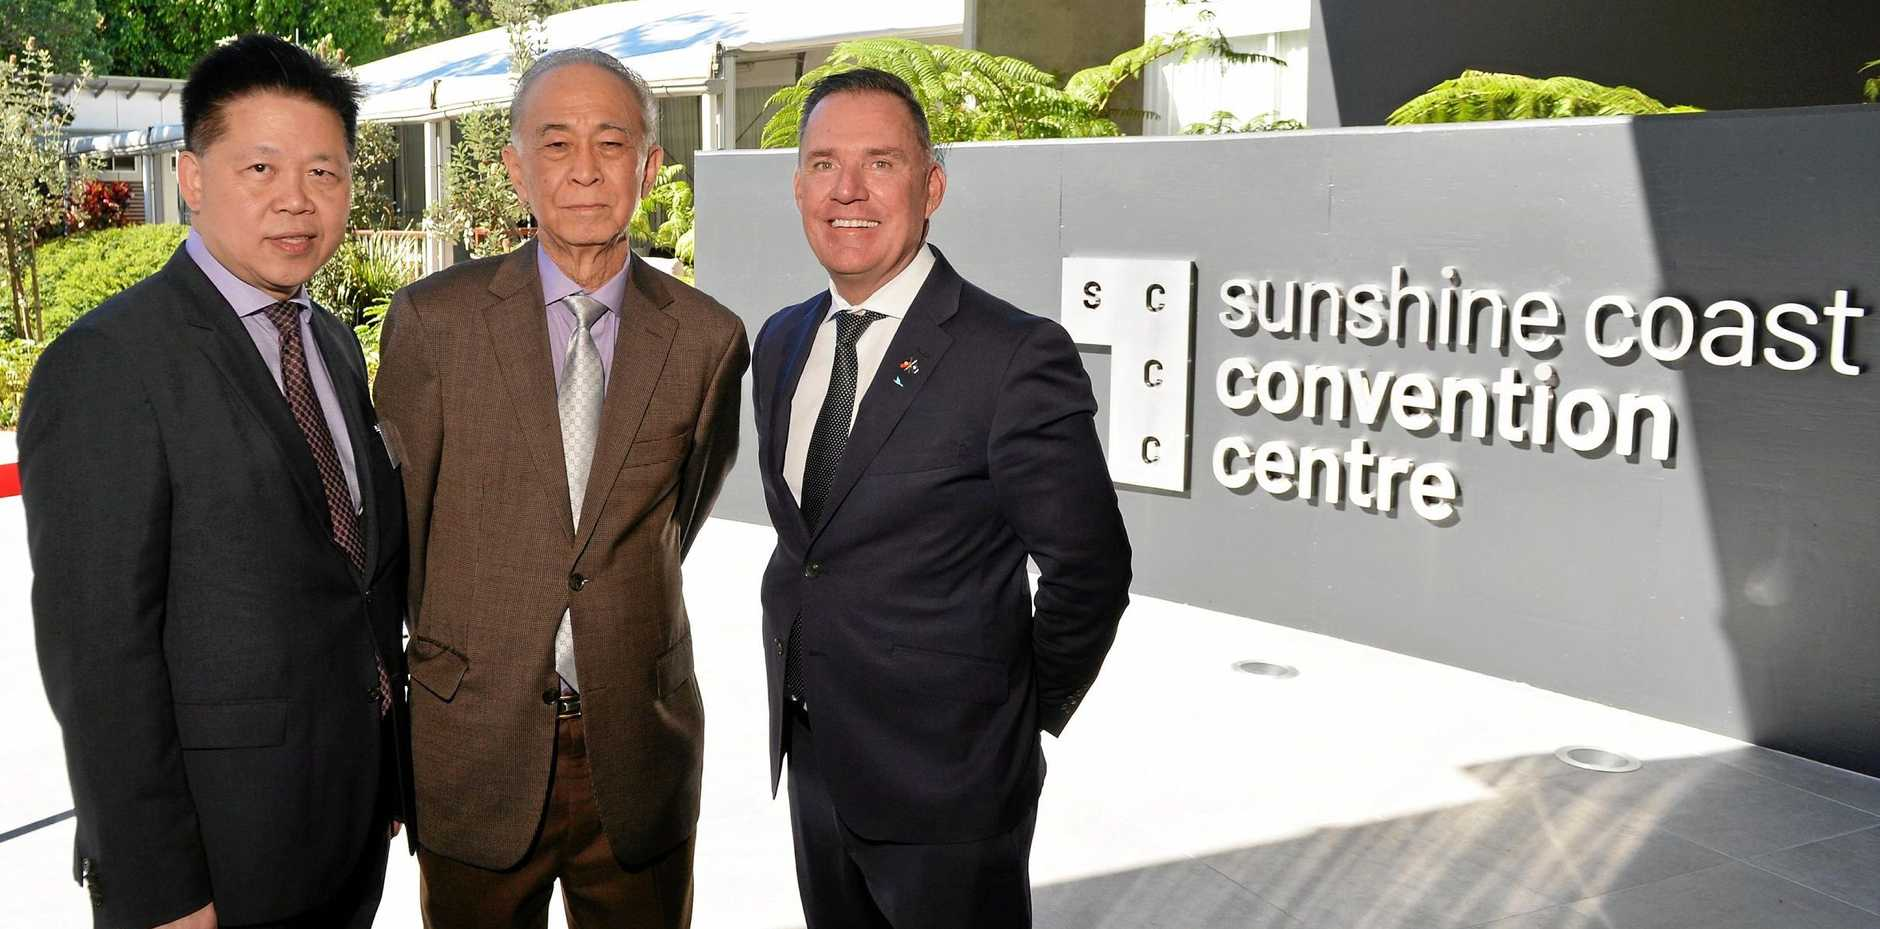 GROWTH: Shakespeare Property Group managing director Yak Yong Quek, chairman Cheng King Law and Accor Pacific chief operating officer Simon McGrath at the Sunshine Coast Convention Centre.